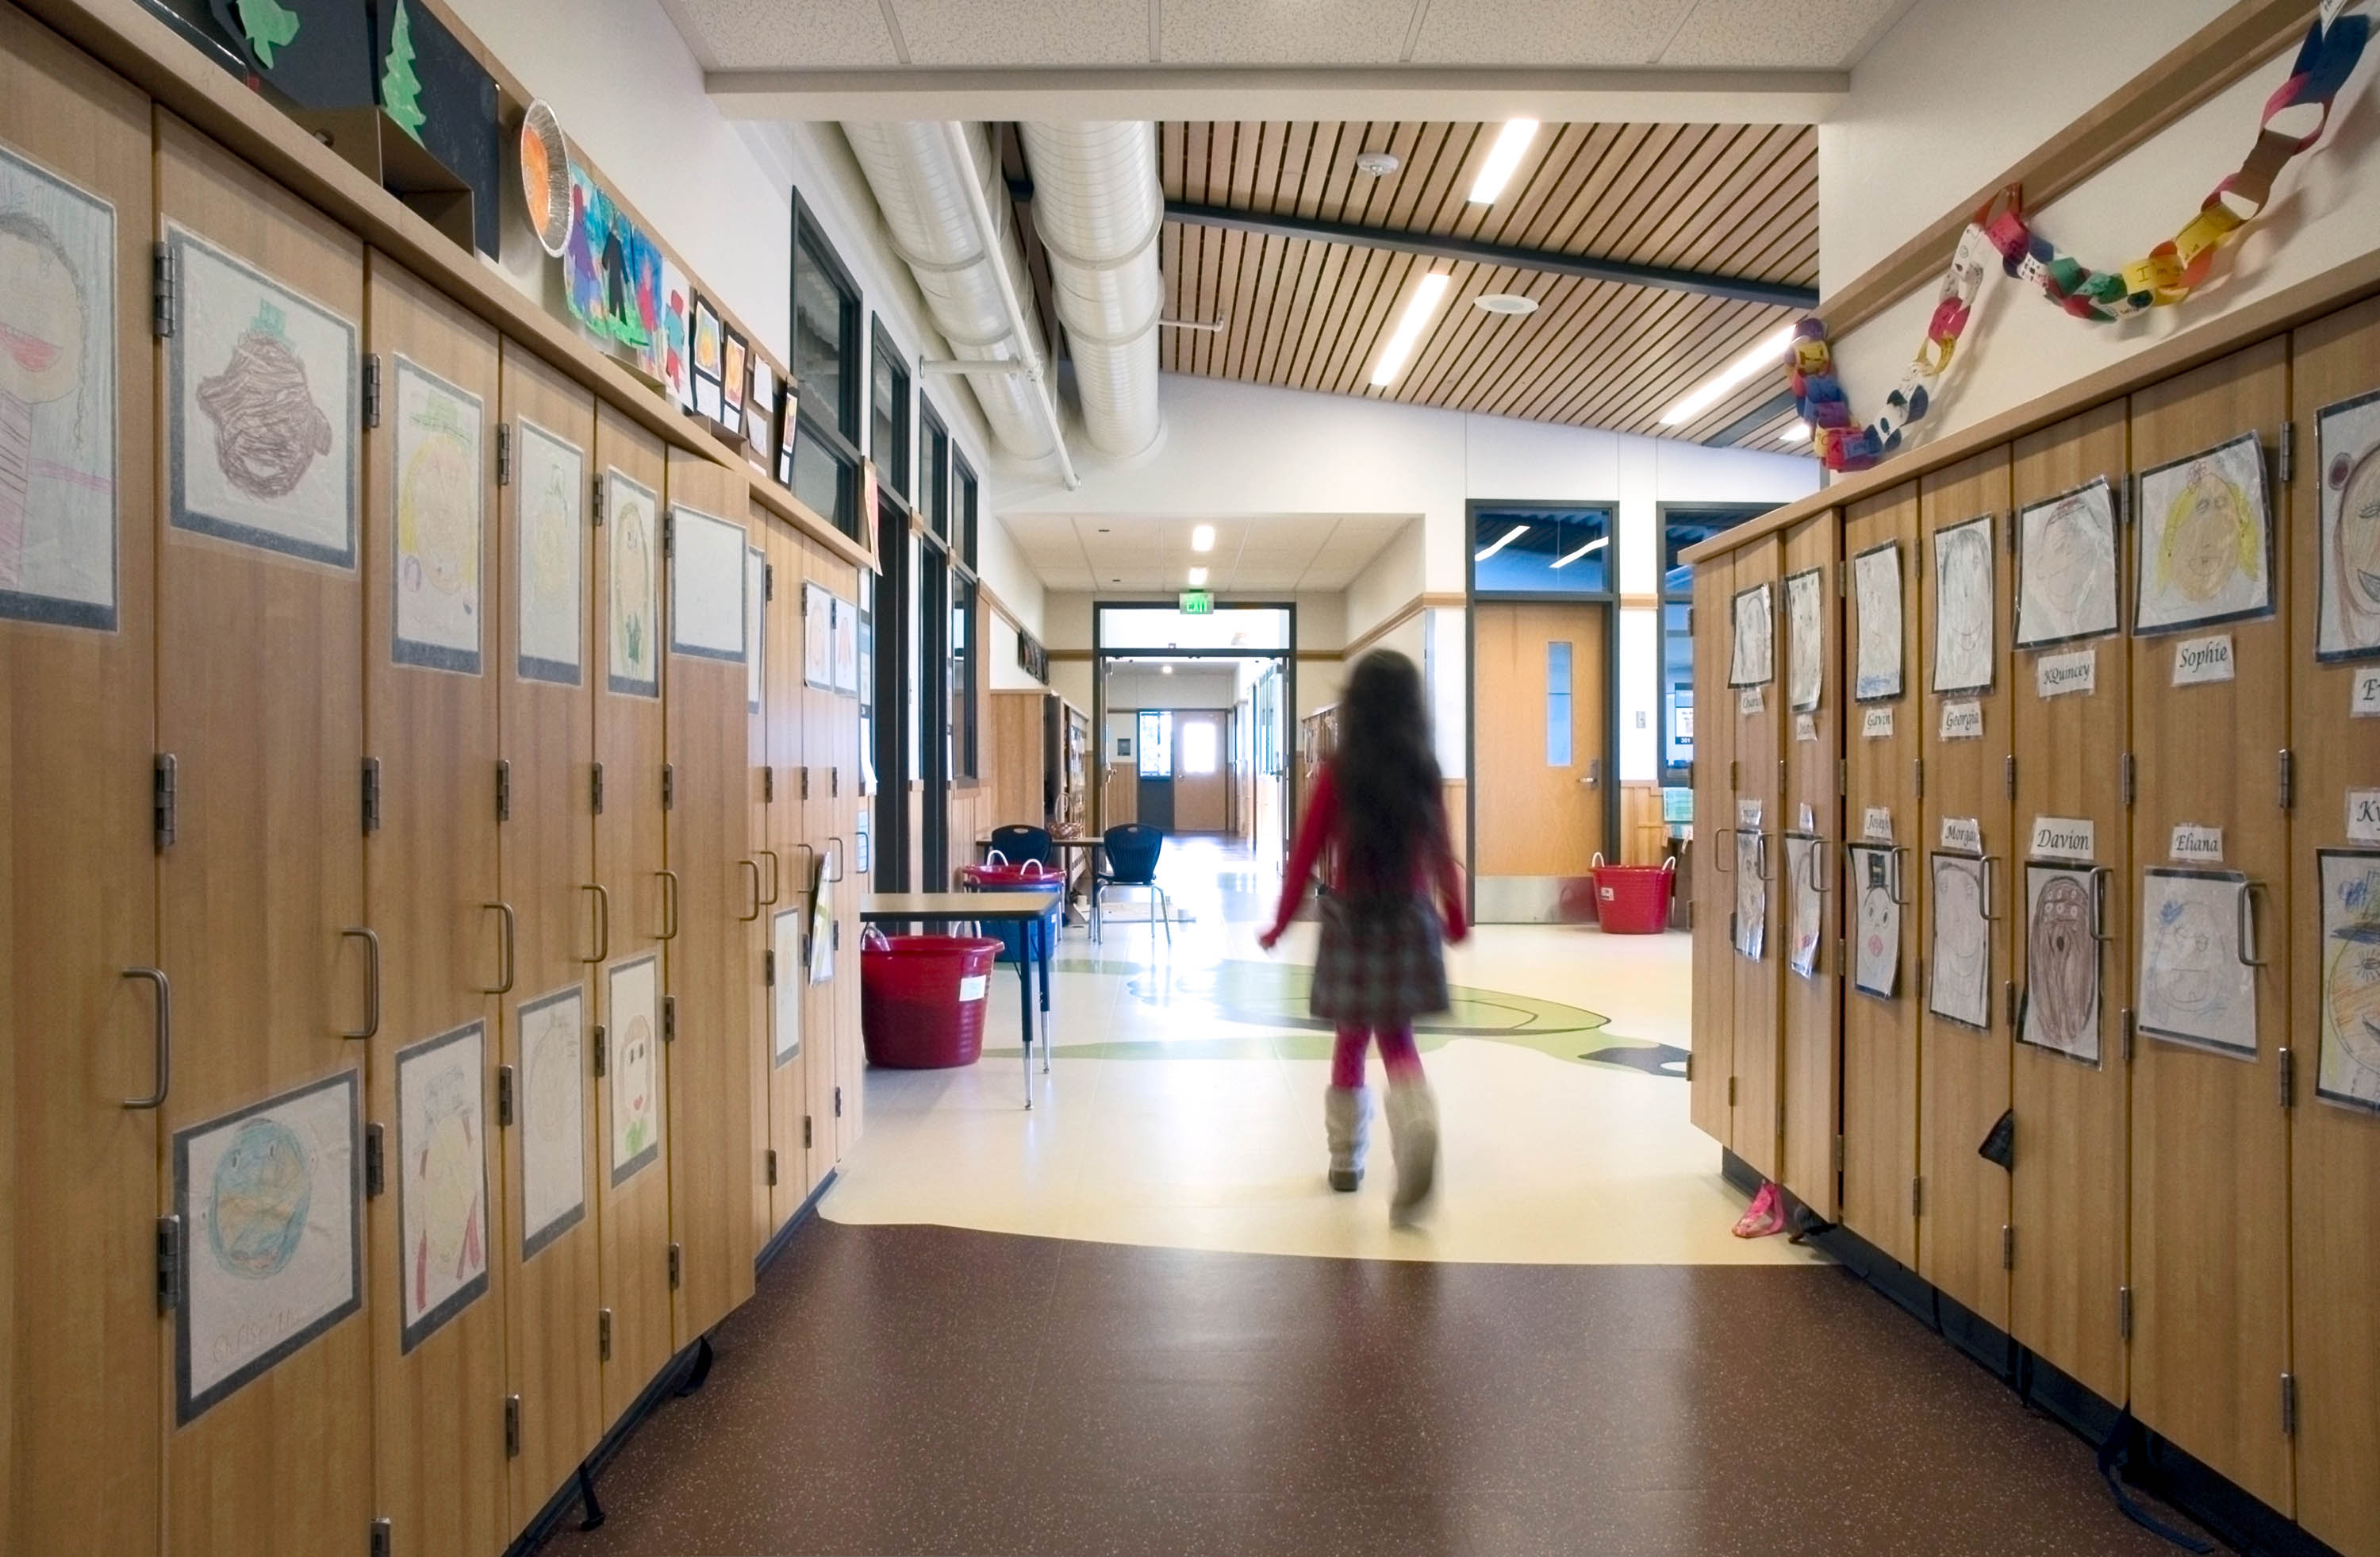 A student walking past lockers in a hallway.